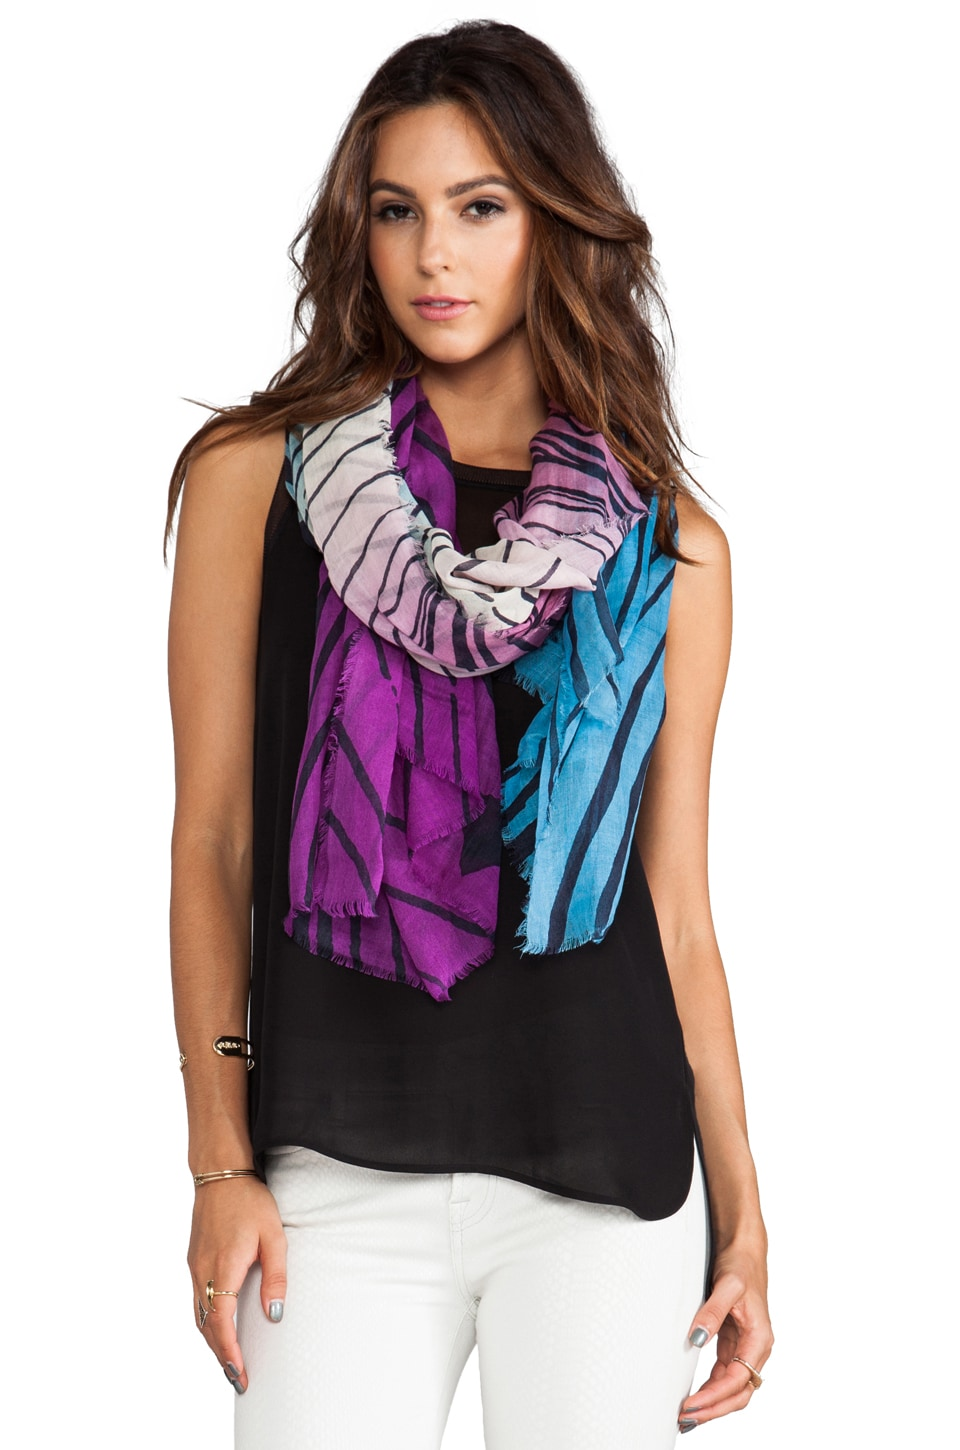 Diane von Furstenberg Hanovar Silk Wol Scarf in Purple Tiger Tree